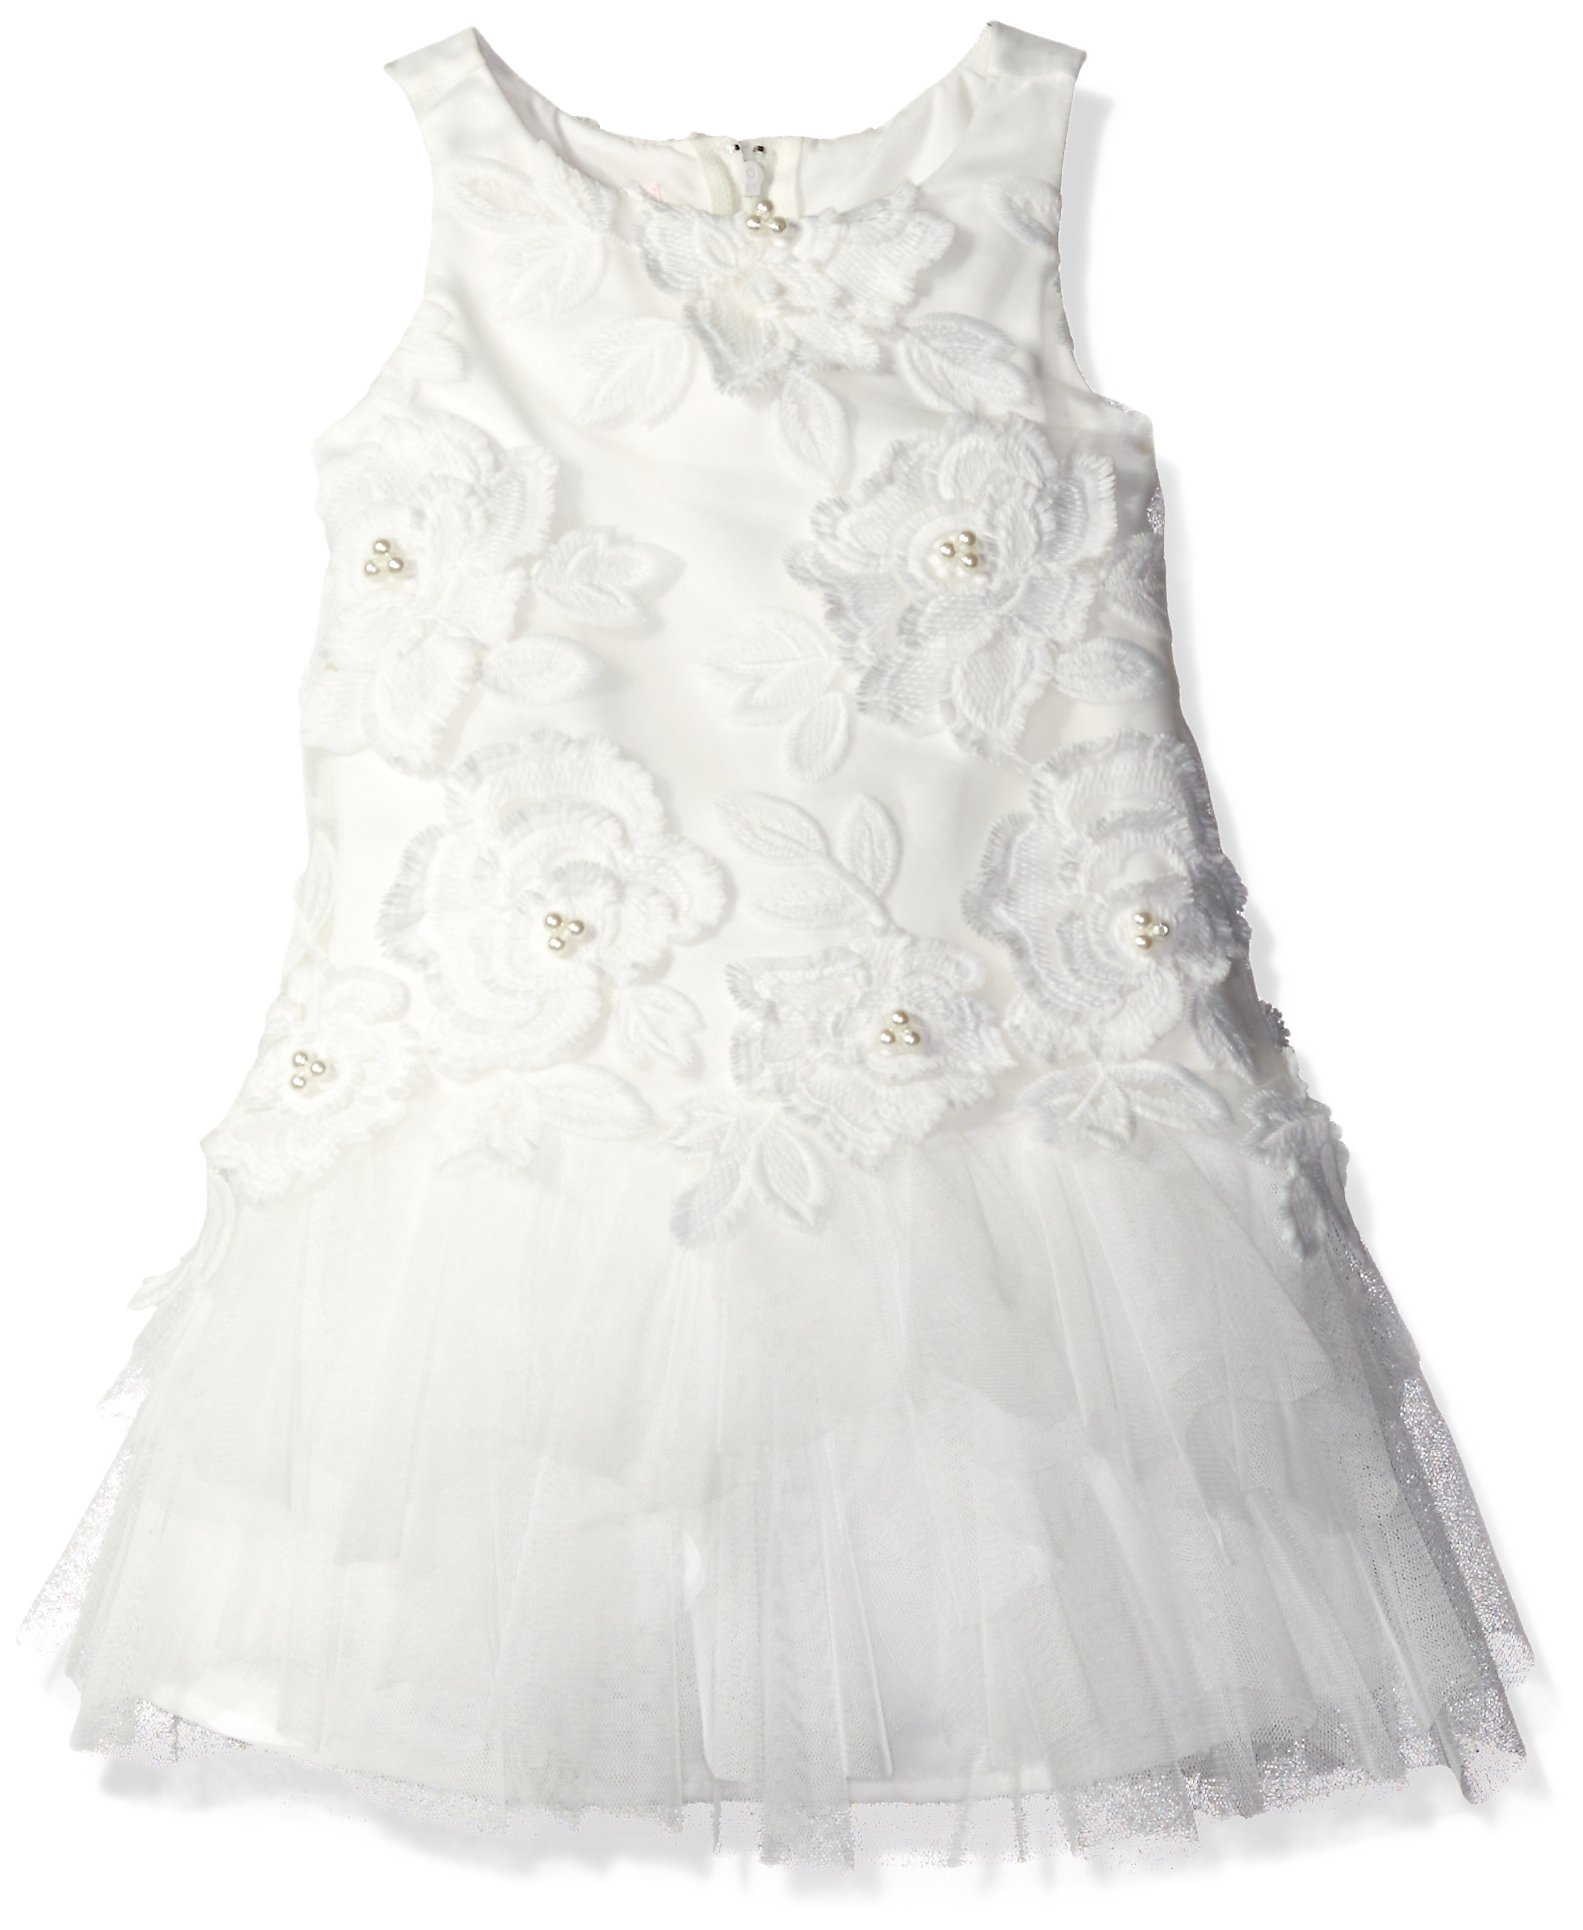 Biscotti Toddler Girls Wedding Party Dress With Embroidered Bodice, Ivory, 3T